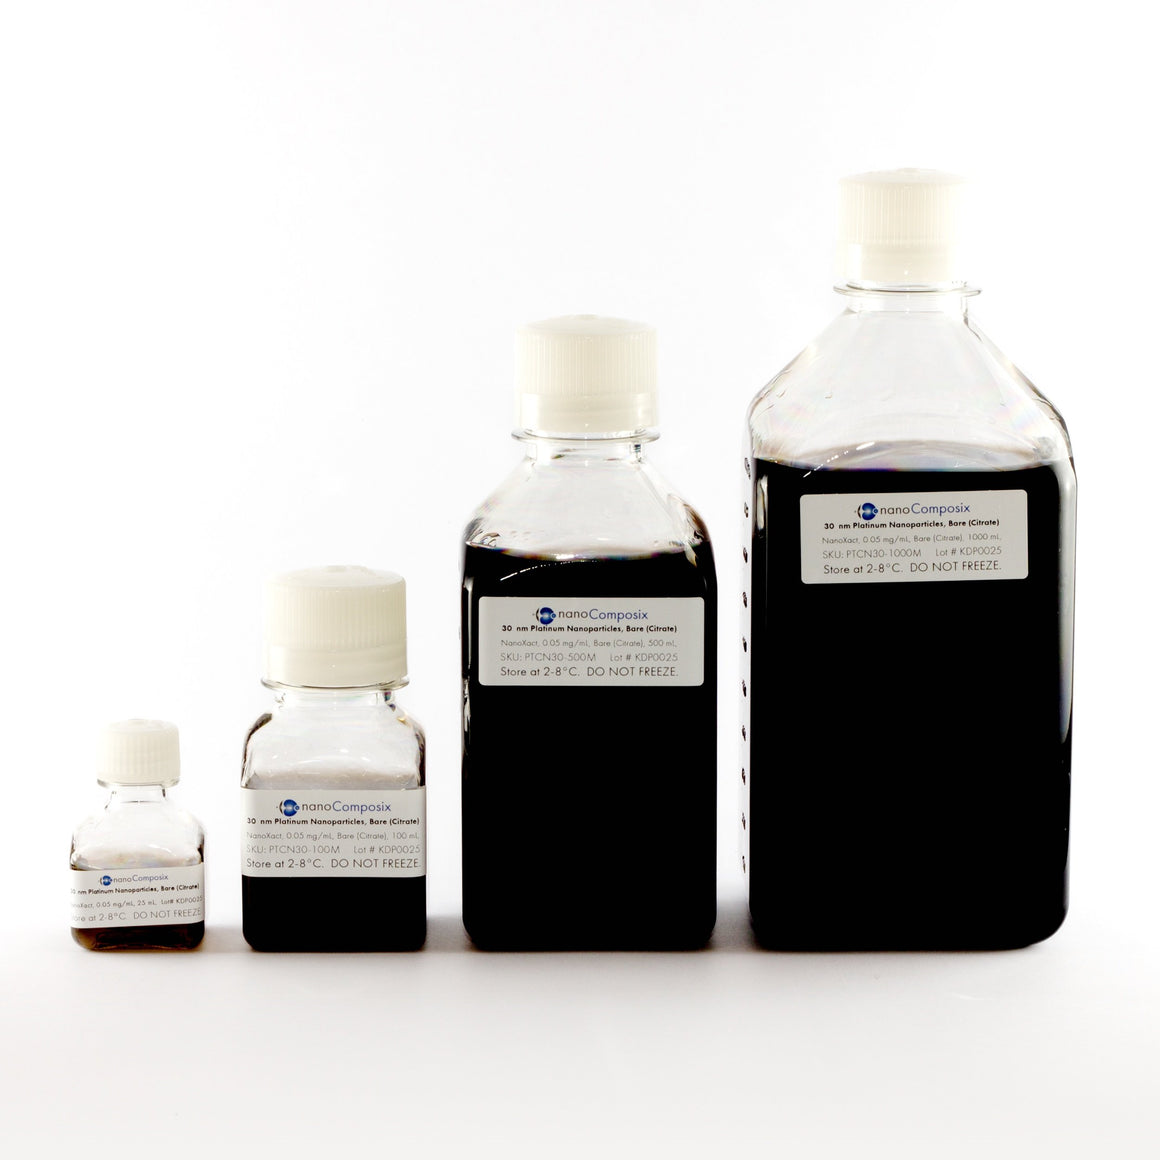 NanoXact Platinum Nanoparticles – Bare (Citrate)